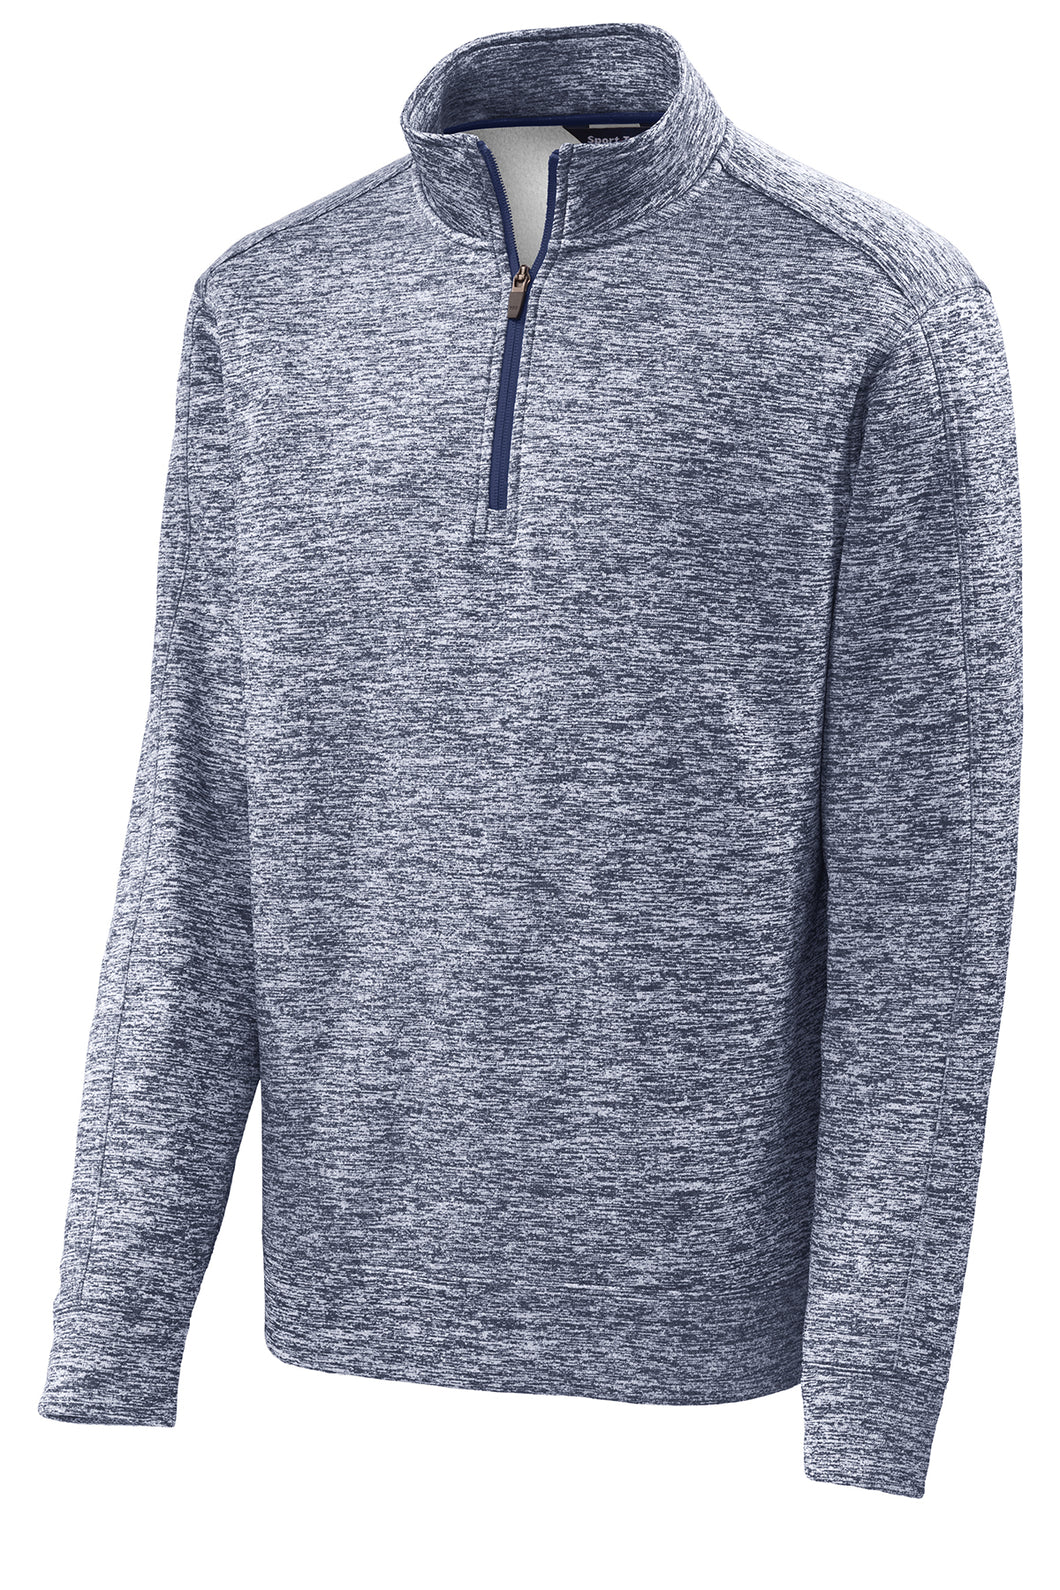 Quarter-Zip Performance Fleece Pullover - Navy